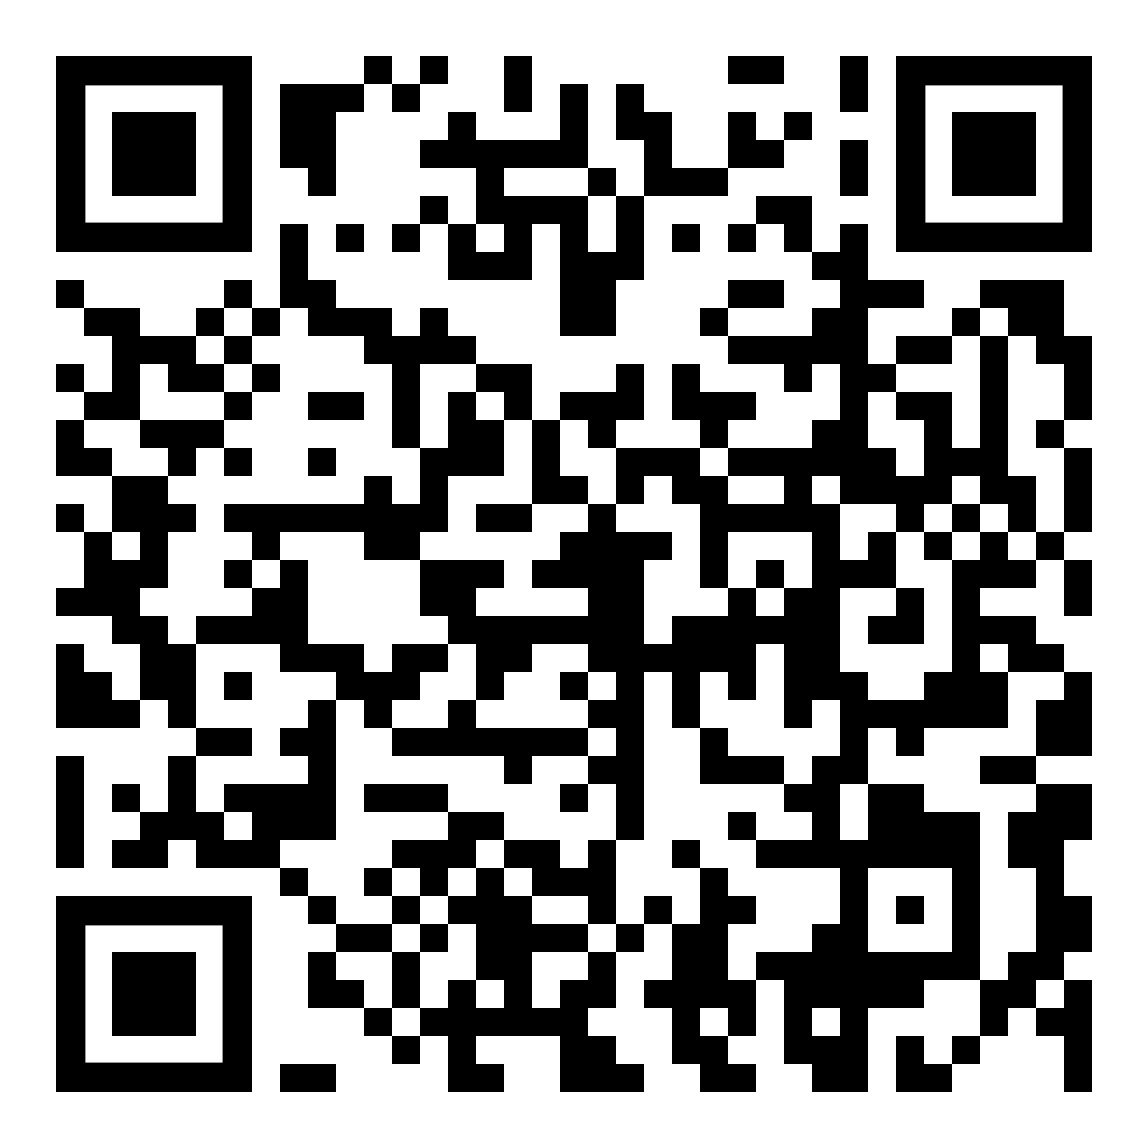 QR code for Sonoma State's MSDS online